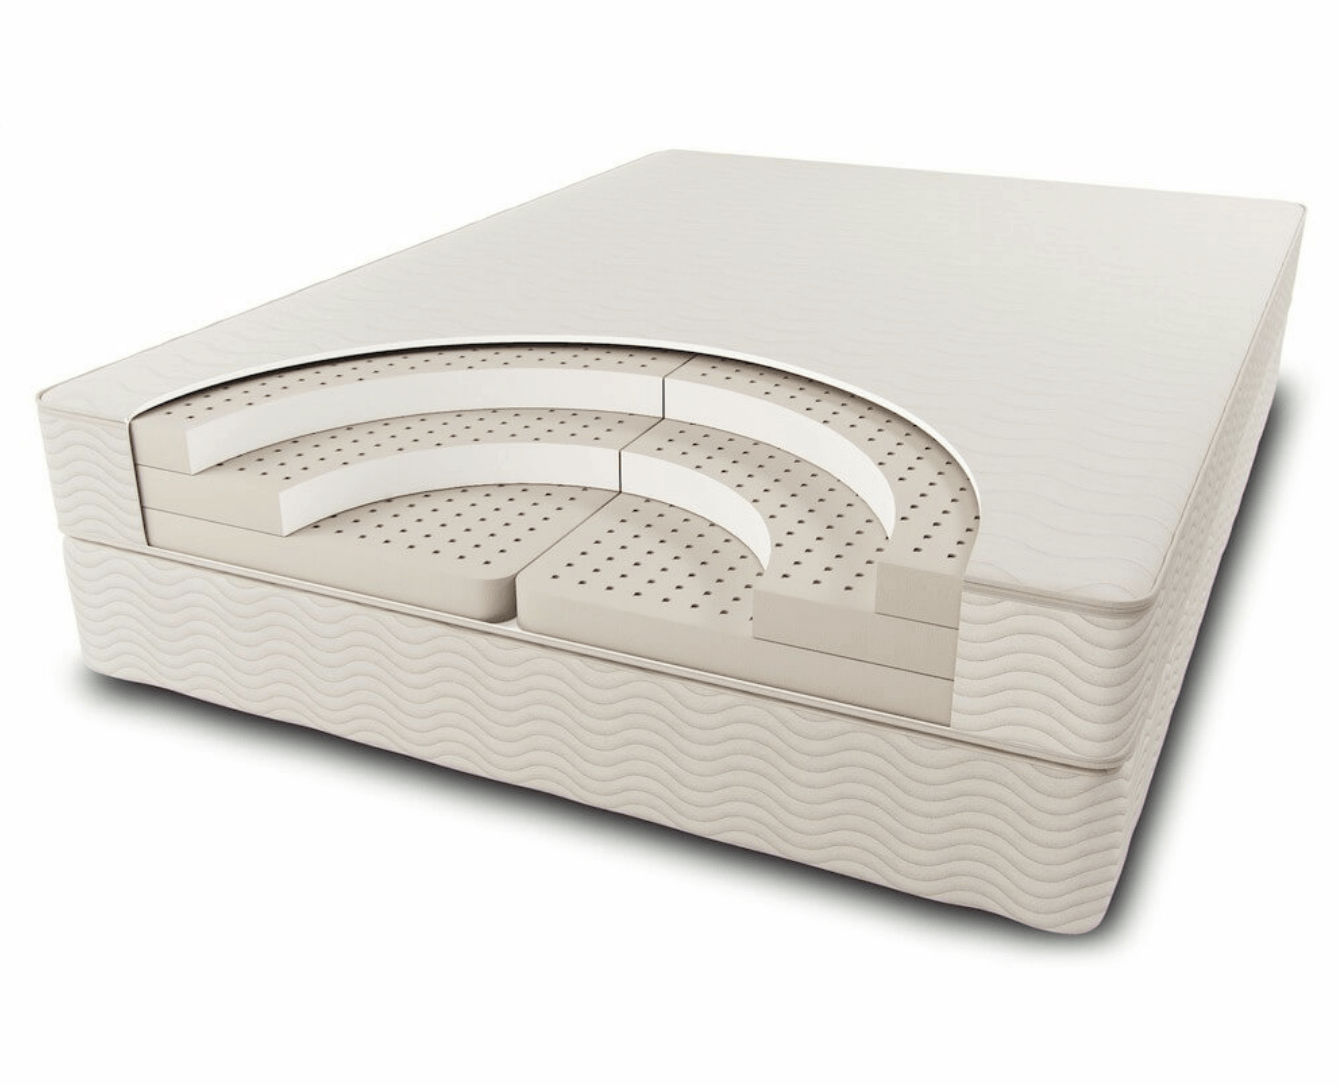 Sleep Ez bed reviews: Components